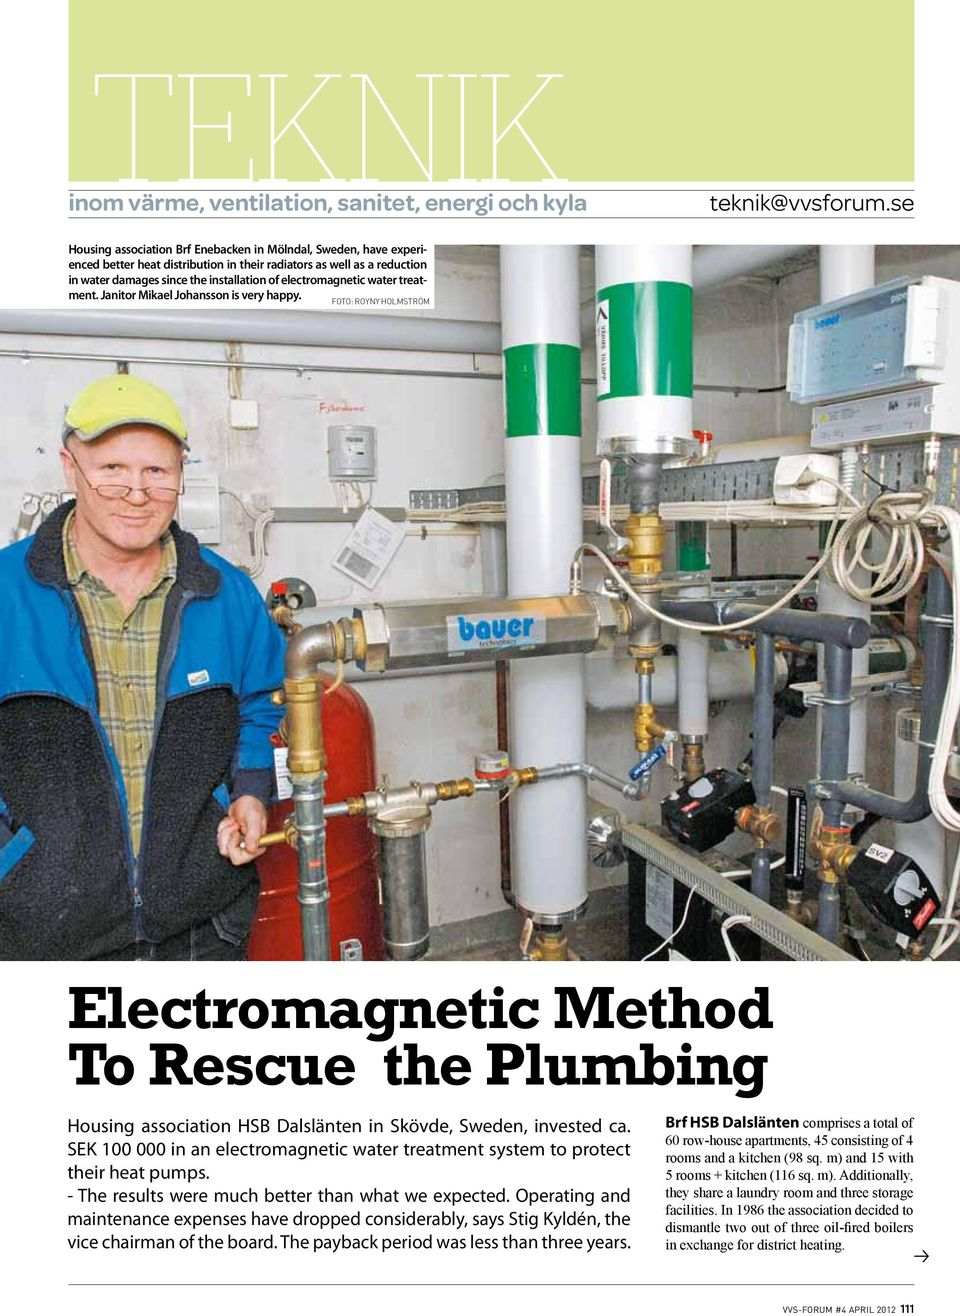 water treatment. Janitor Mikael Johansson is very happy. Electromagnetic Method To Rescue the Plumbing Housing association HSB Dalslänten in Skövde, Sweden, invested ca.